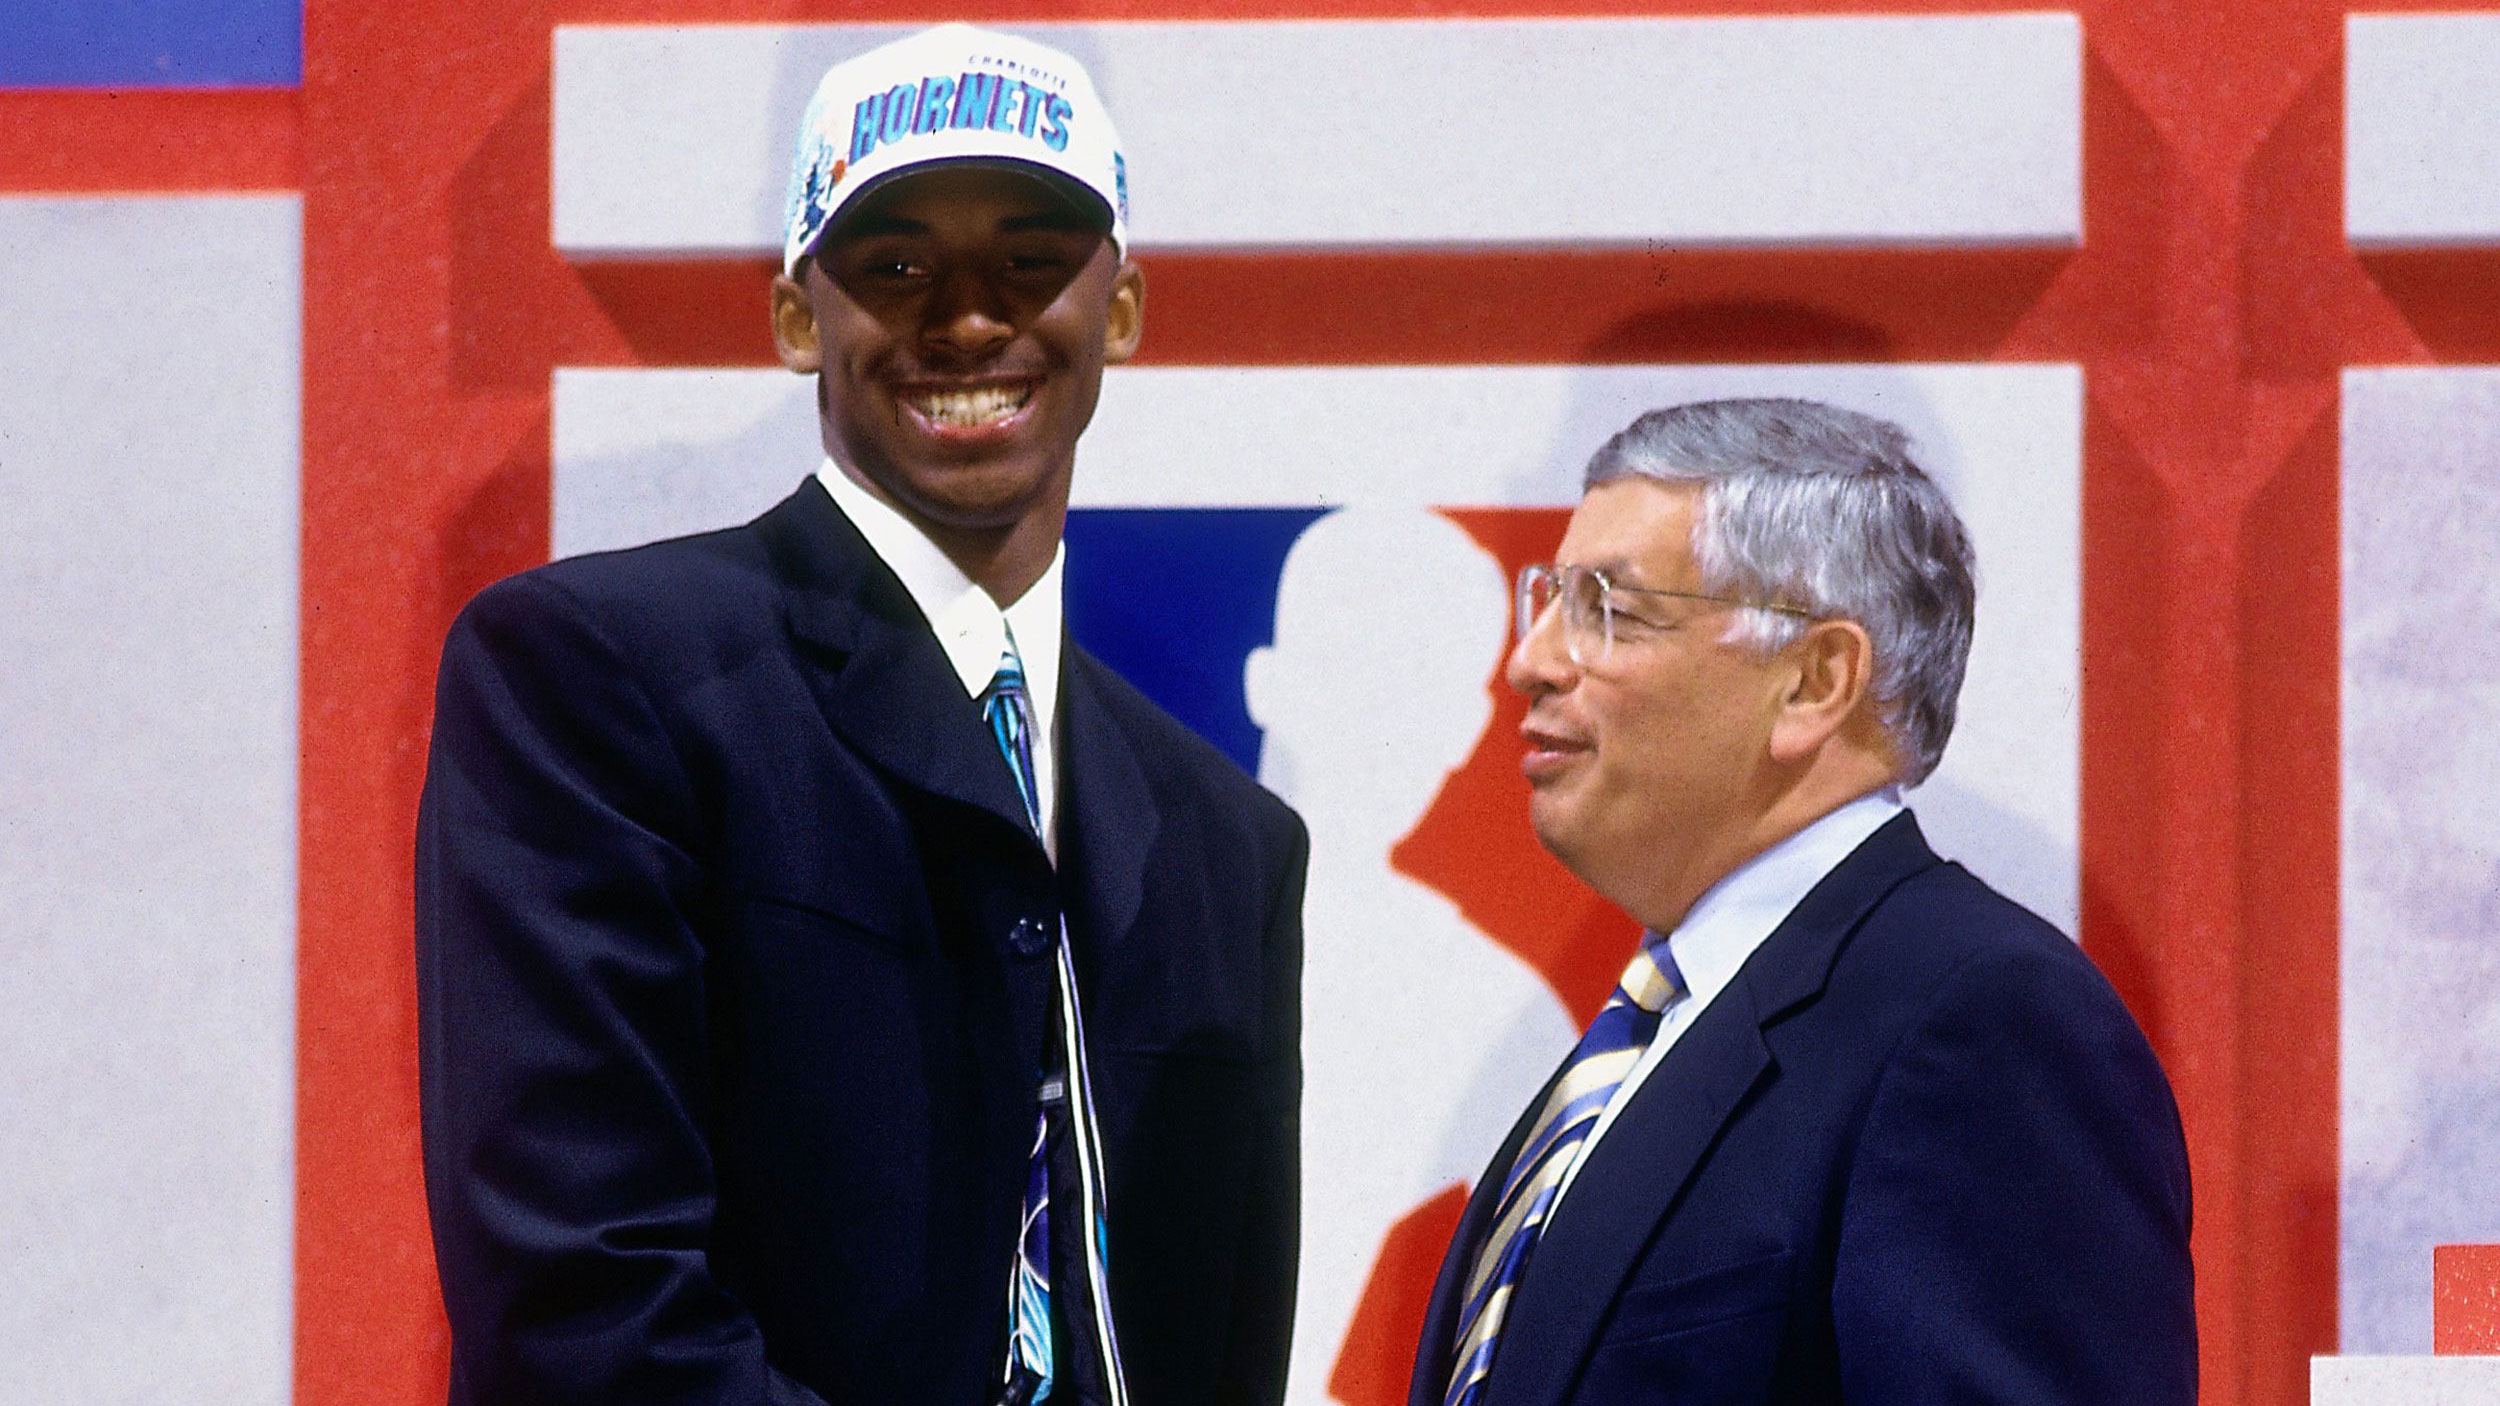 Kobe Bryant poses with NBA Commissioner David Stern after being selected in the first round of the 1996 NBA Draft by the Charlotte Hornets.